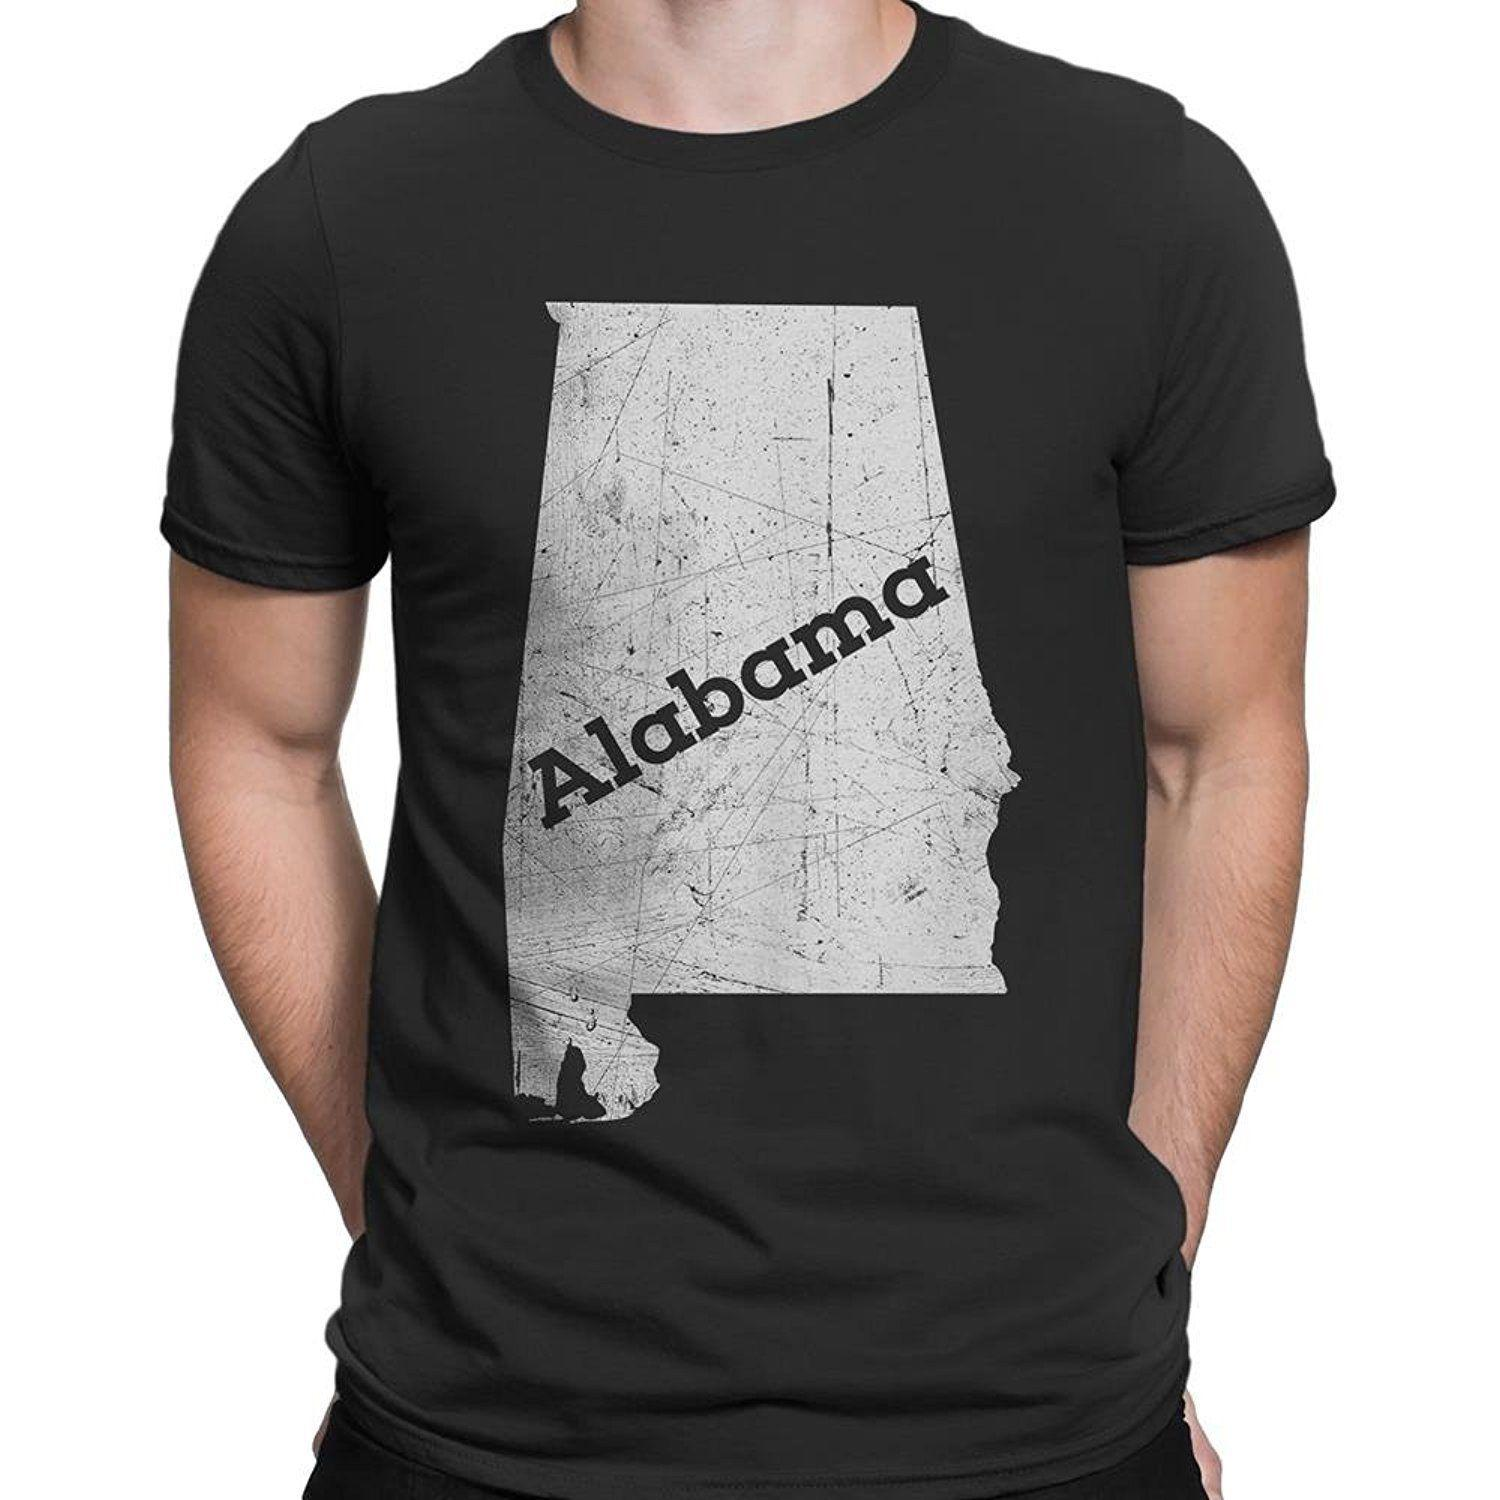 ceddffb715e Nyc Factory Alabama Mens Tee Home State T Shirt Alabama Mens Tee Black S  Cool Looking T Shirts Buy Designer Shirts From Lm35tshirt